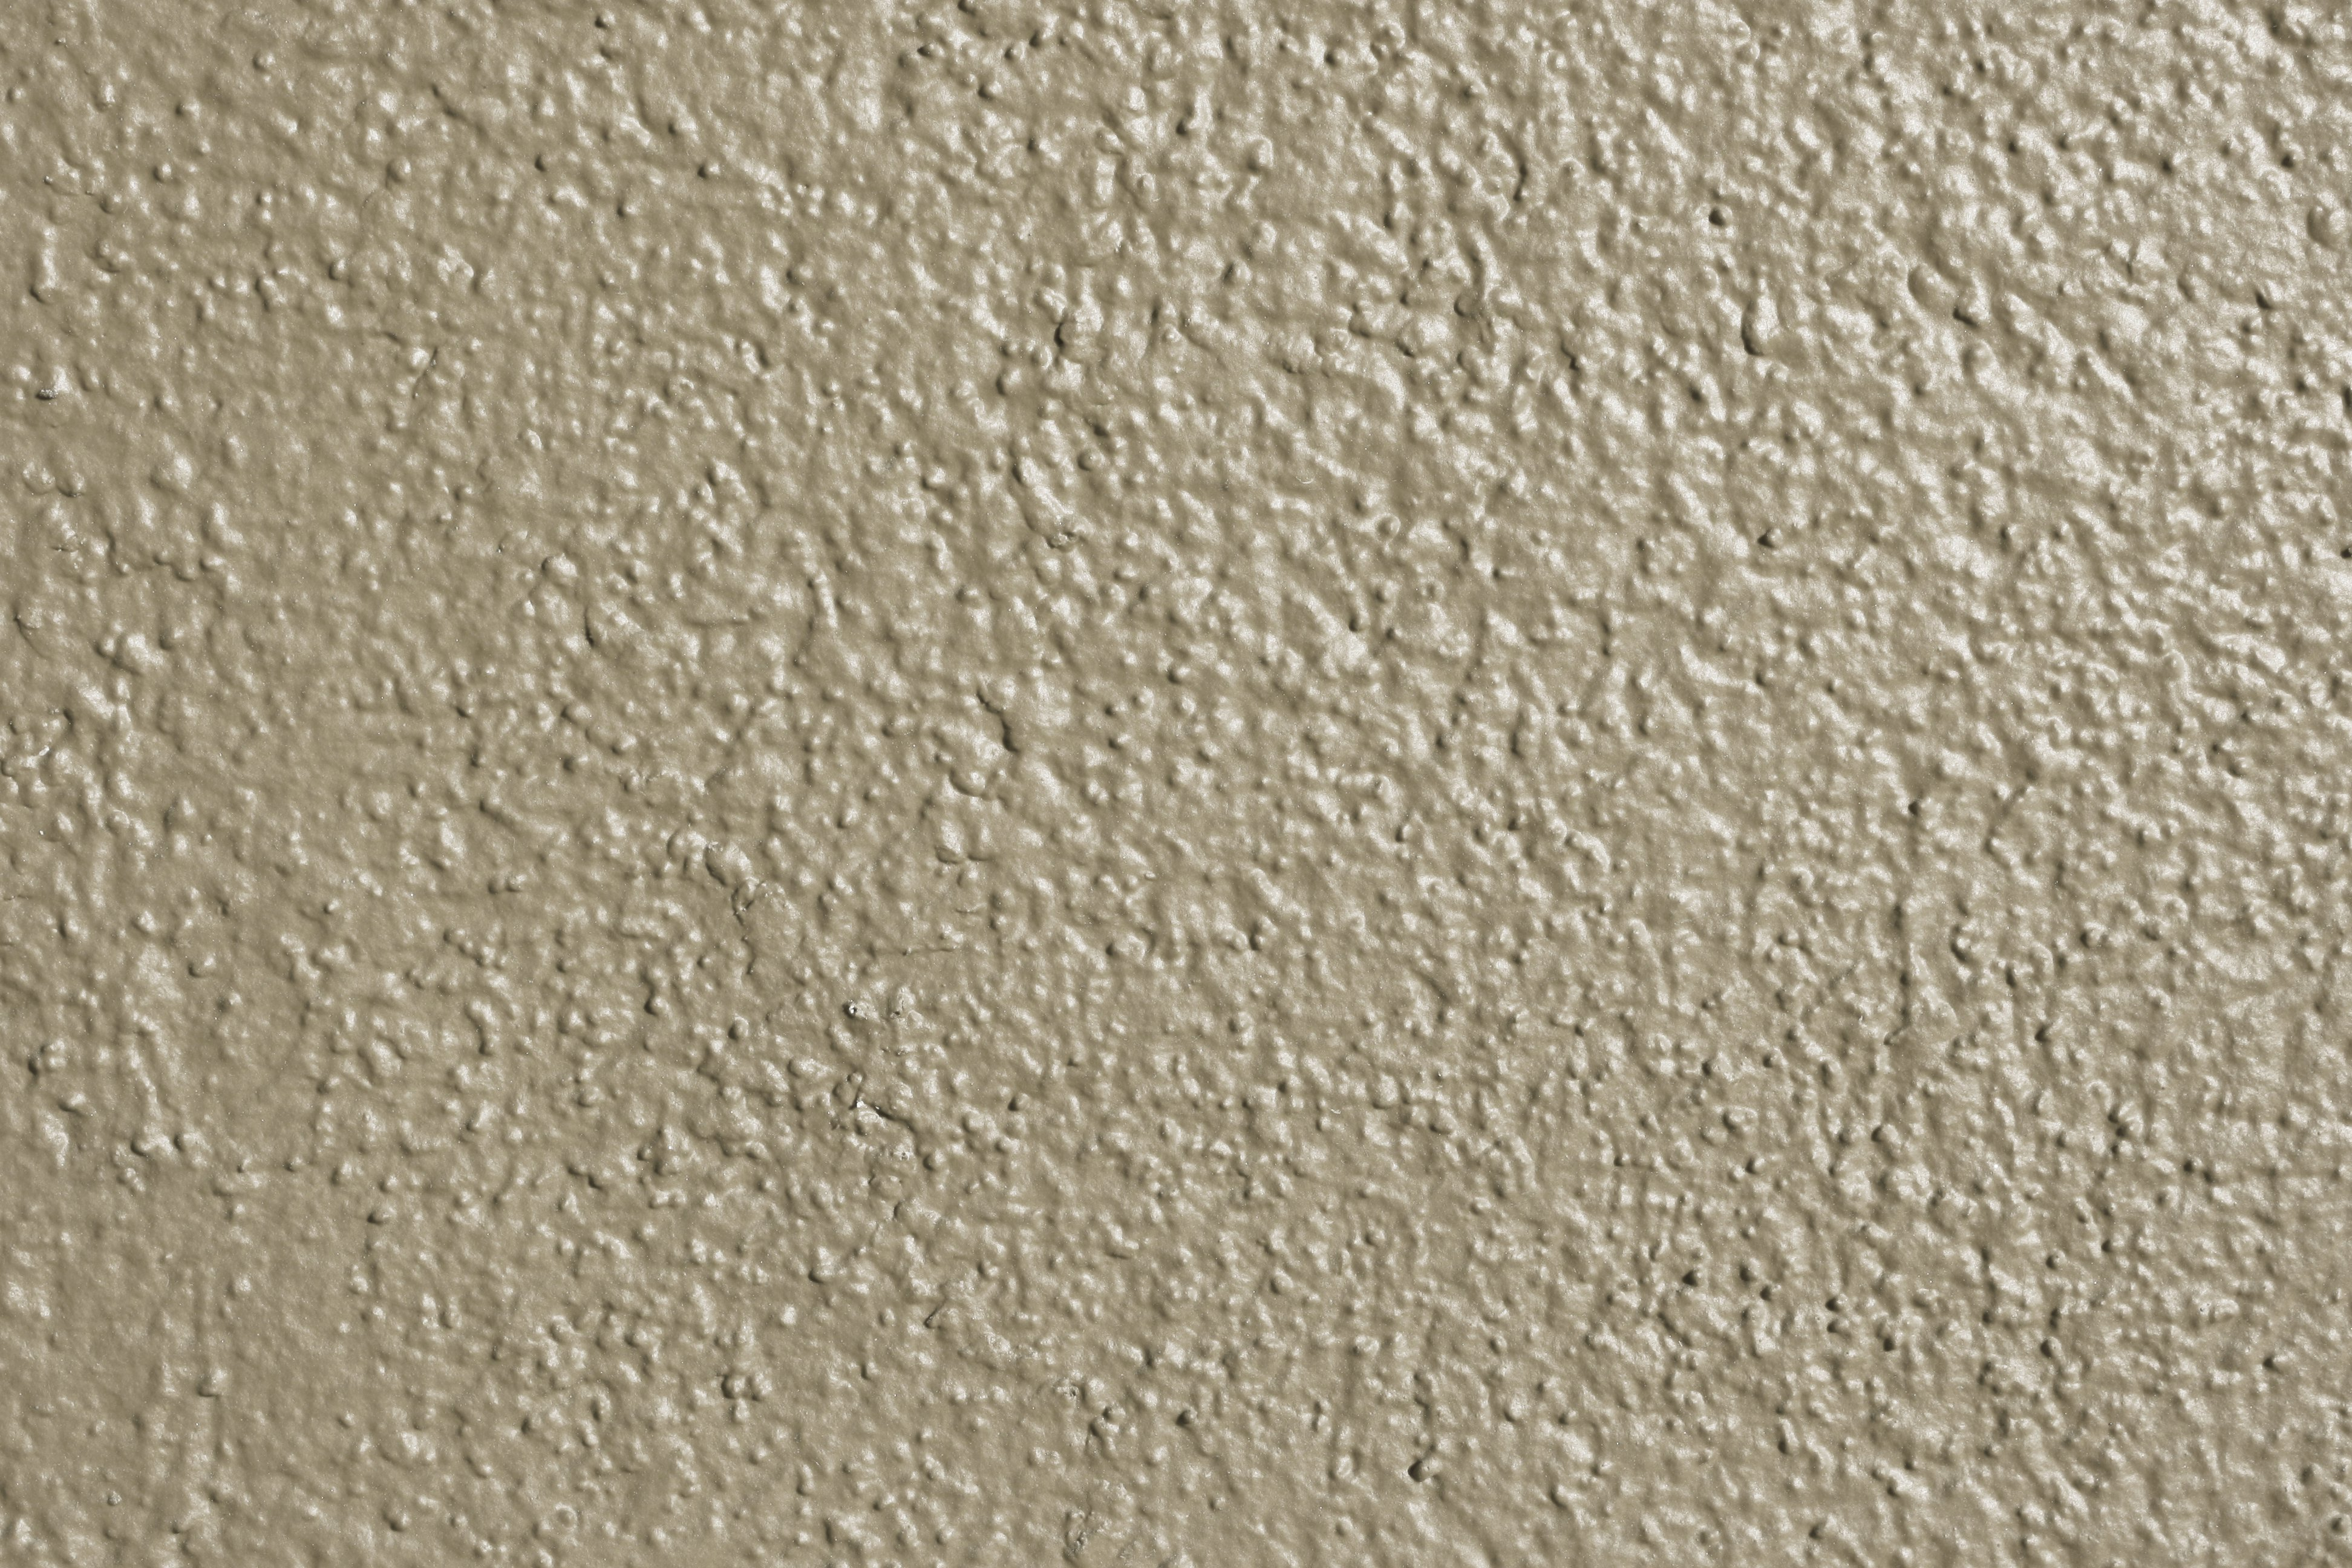 Beige Painted Wall Texture Picture Free Photograph Photos Public